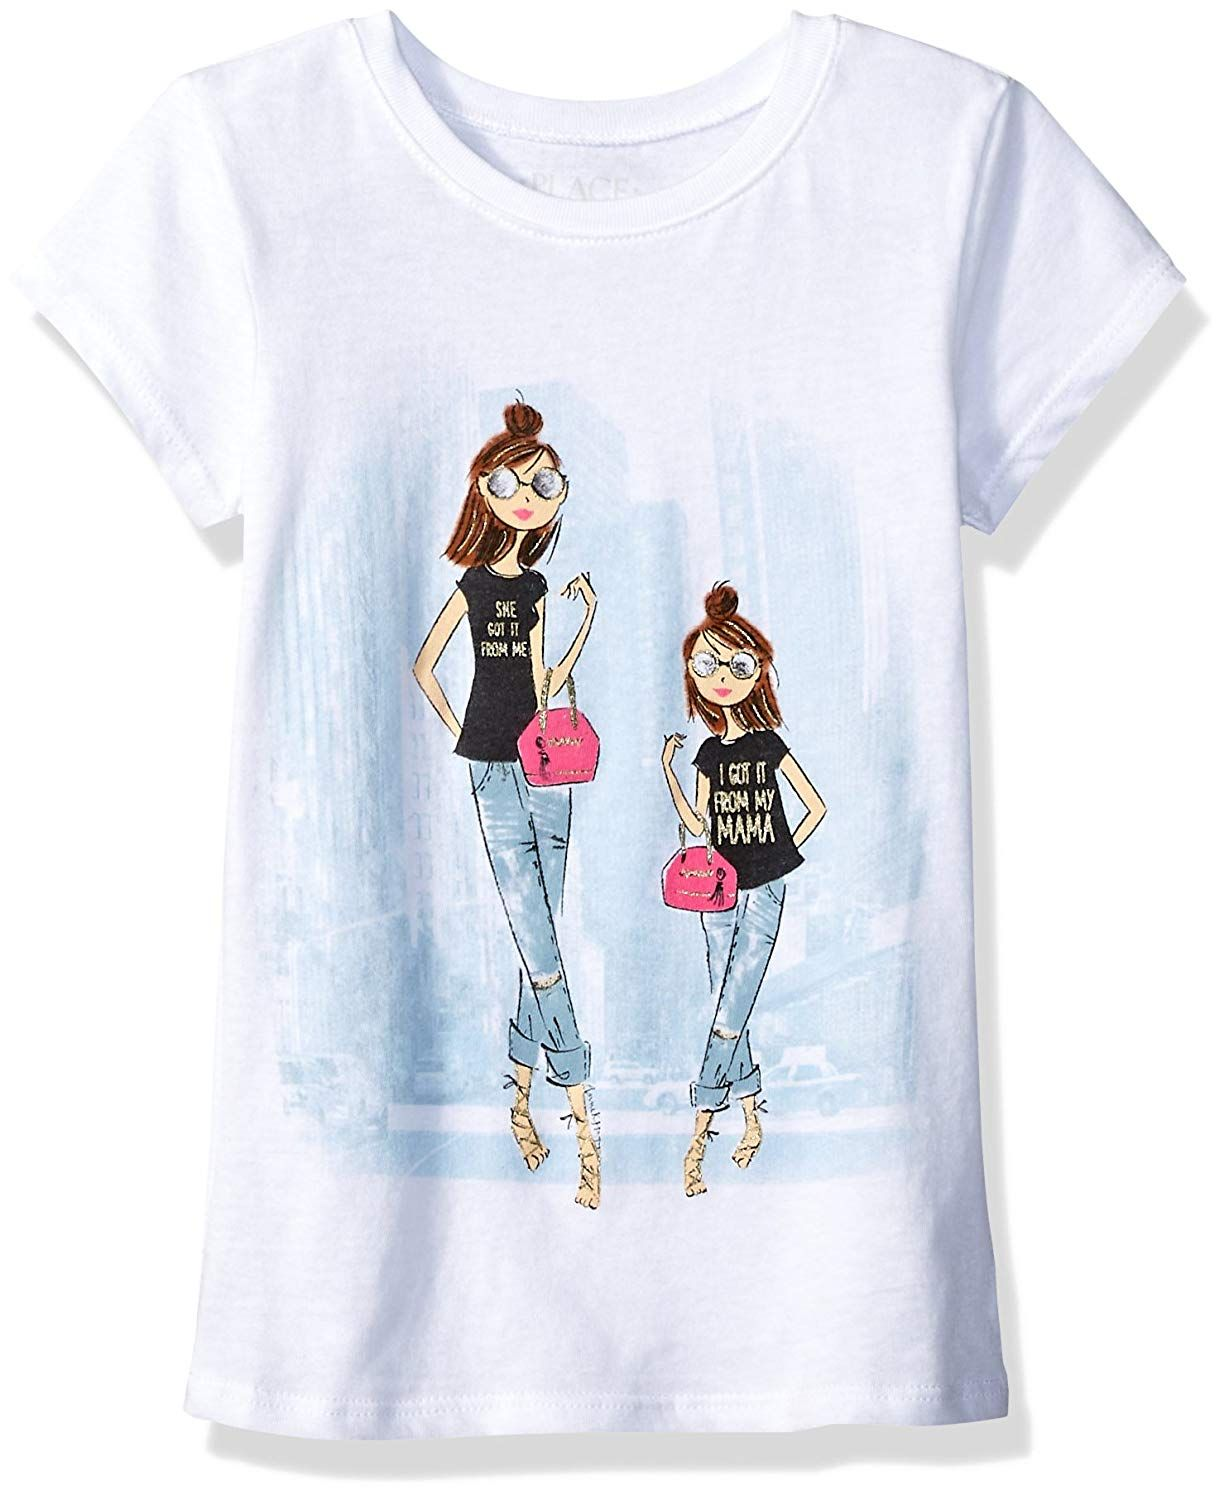 d967fe719 The Children's Place Big Girls' Short Sleeve Graphic Tee | girls ...